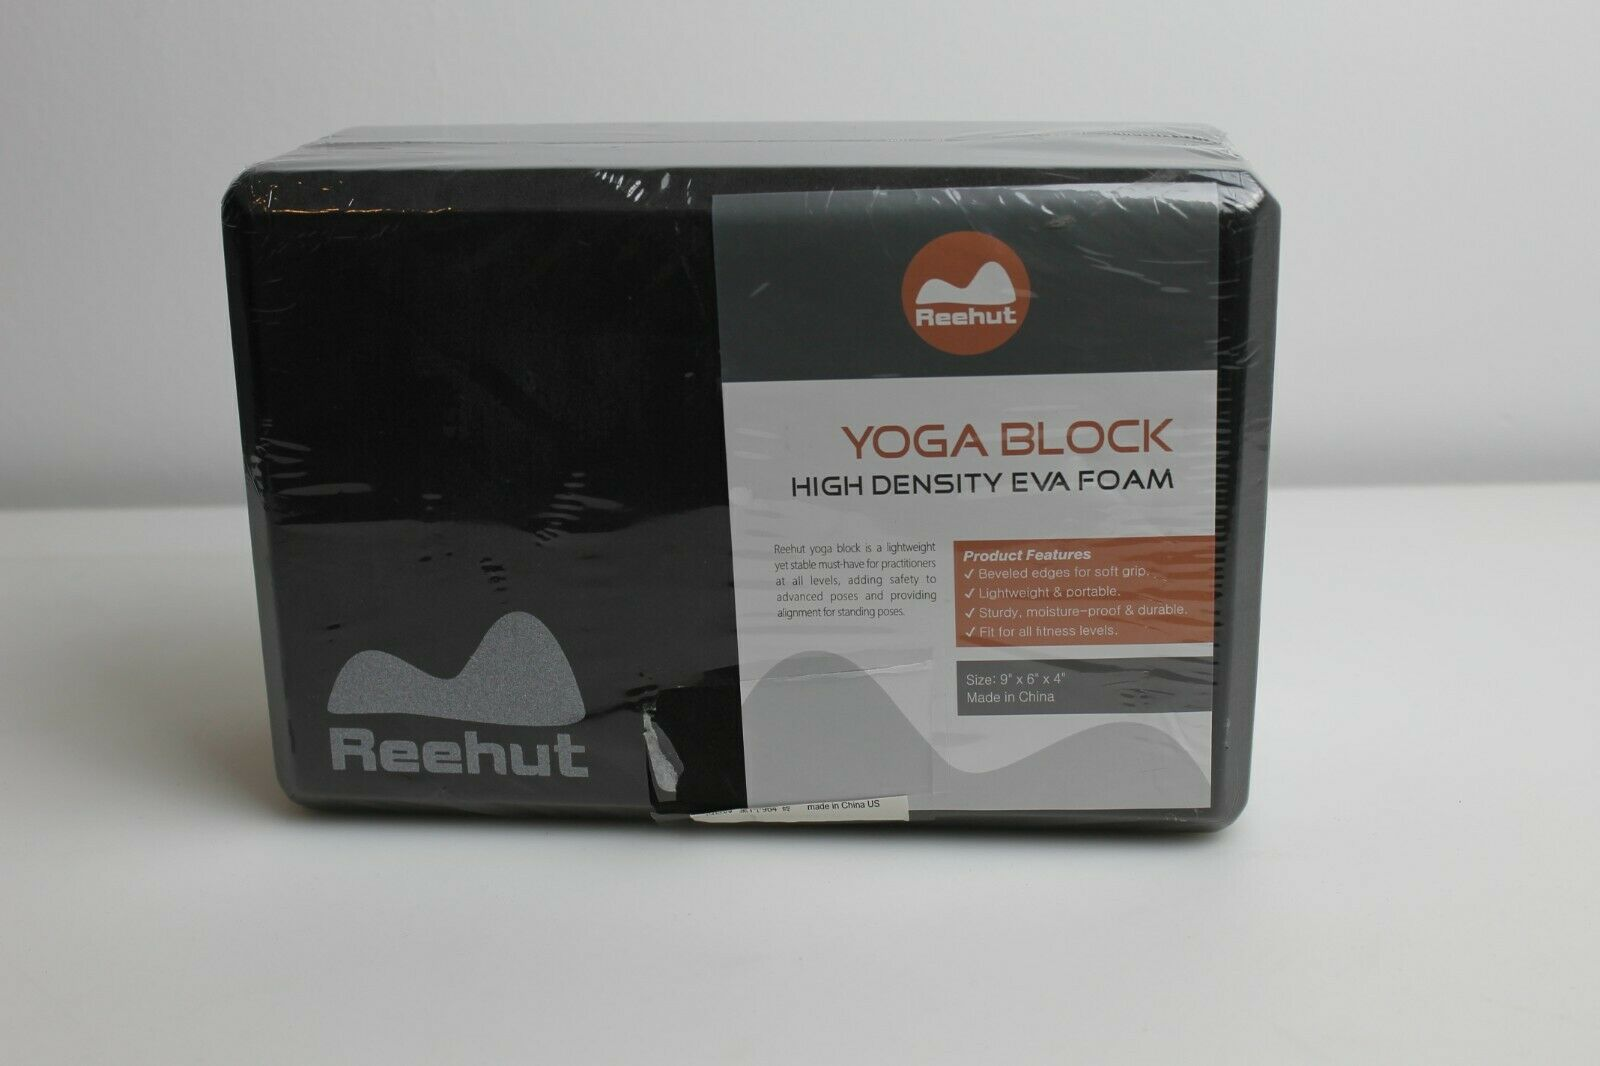 Reehut Foam Yoga Block Pilates Supportive High Density EVA Foam Yoga Brick